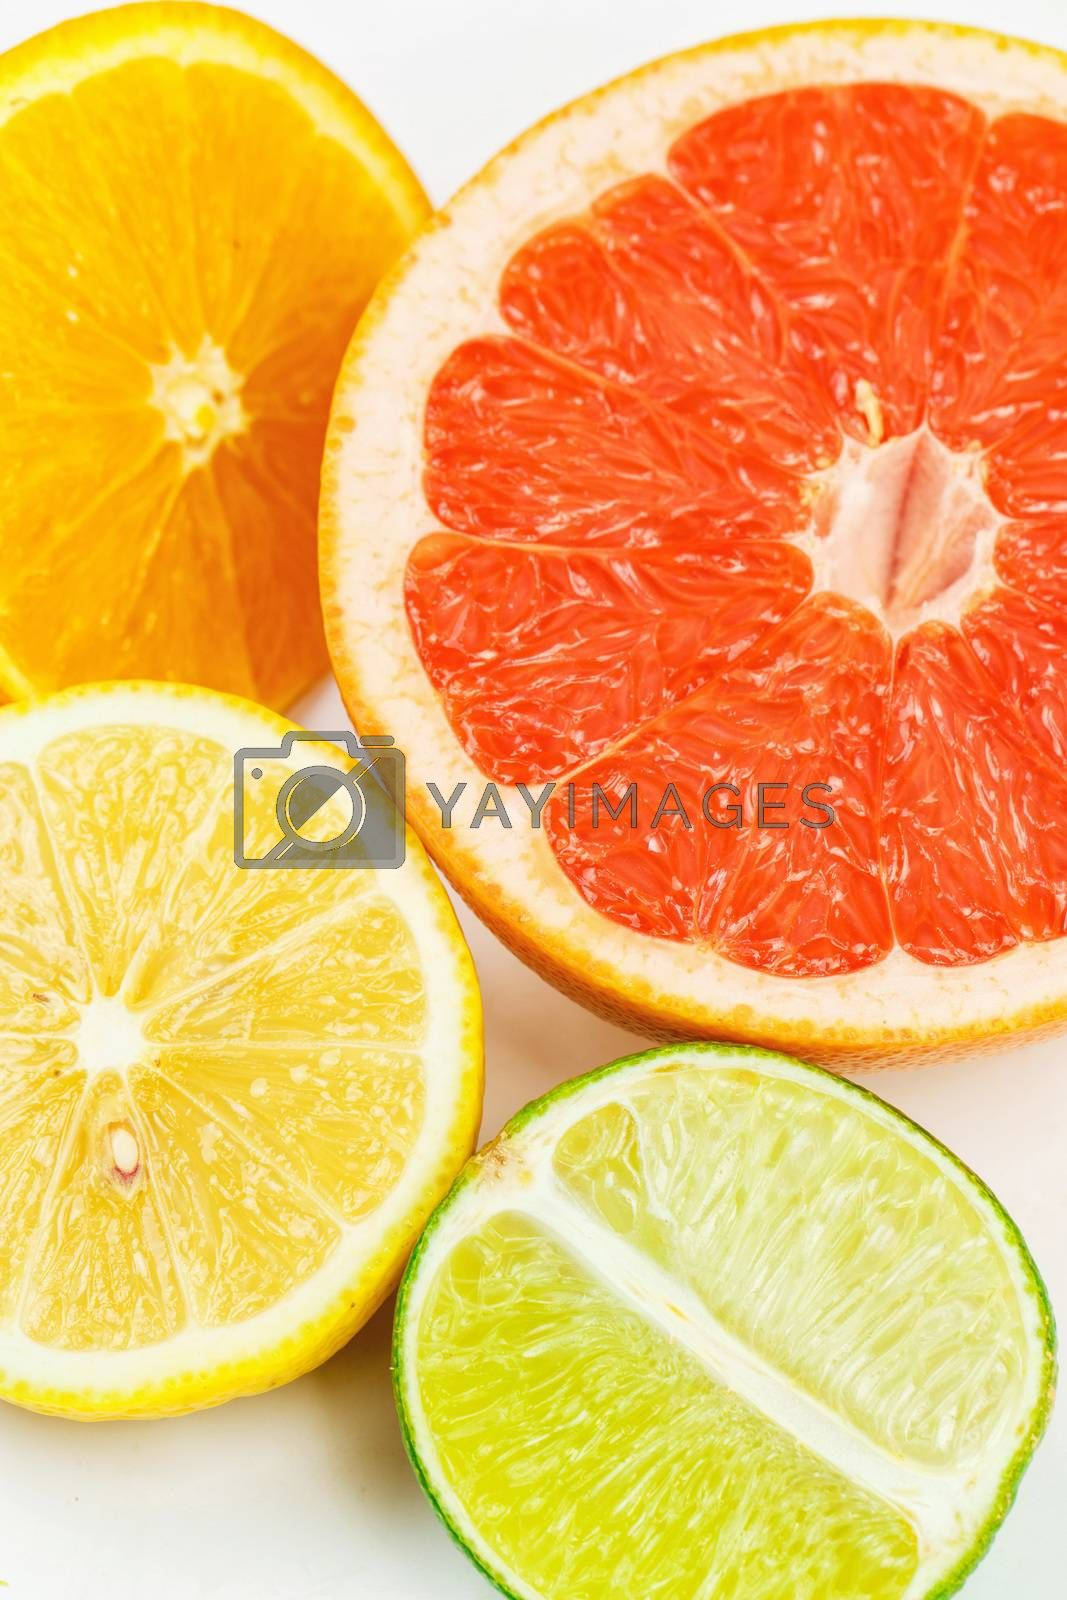 Background from citrus fruits isolated on white